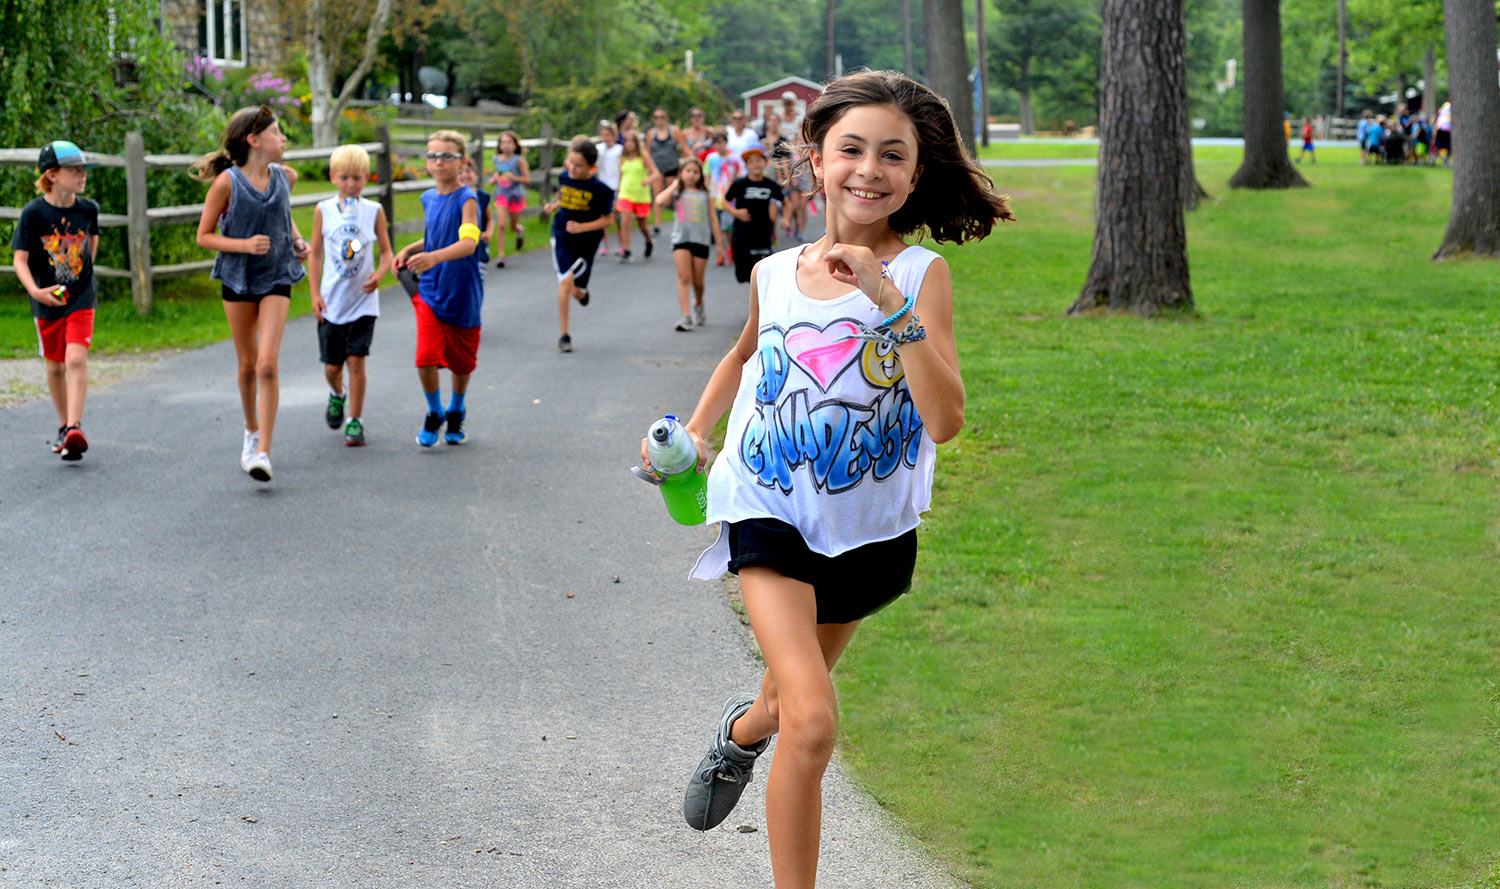 Image of Stella Running - Fun Summer Camp Activities